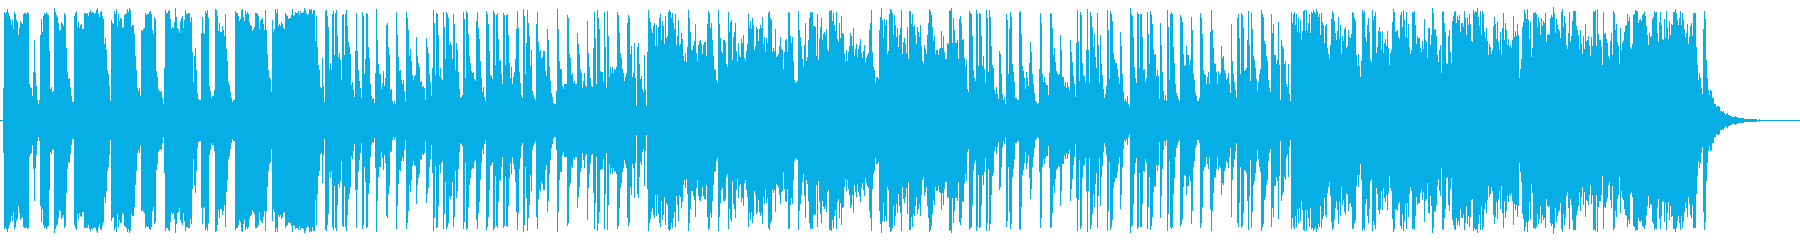 A heartwarming and bright slow tempo song's reproduced waveform